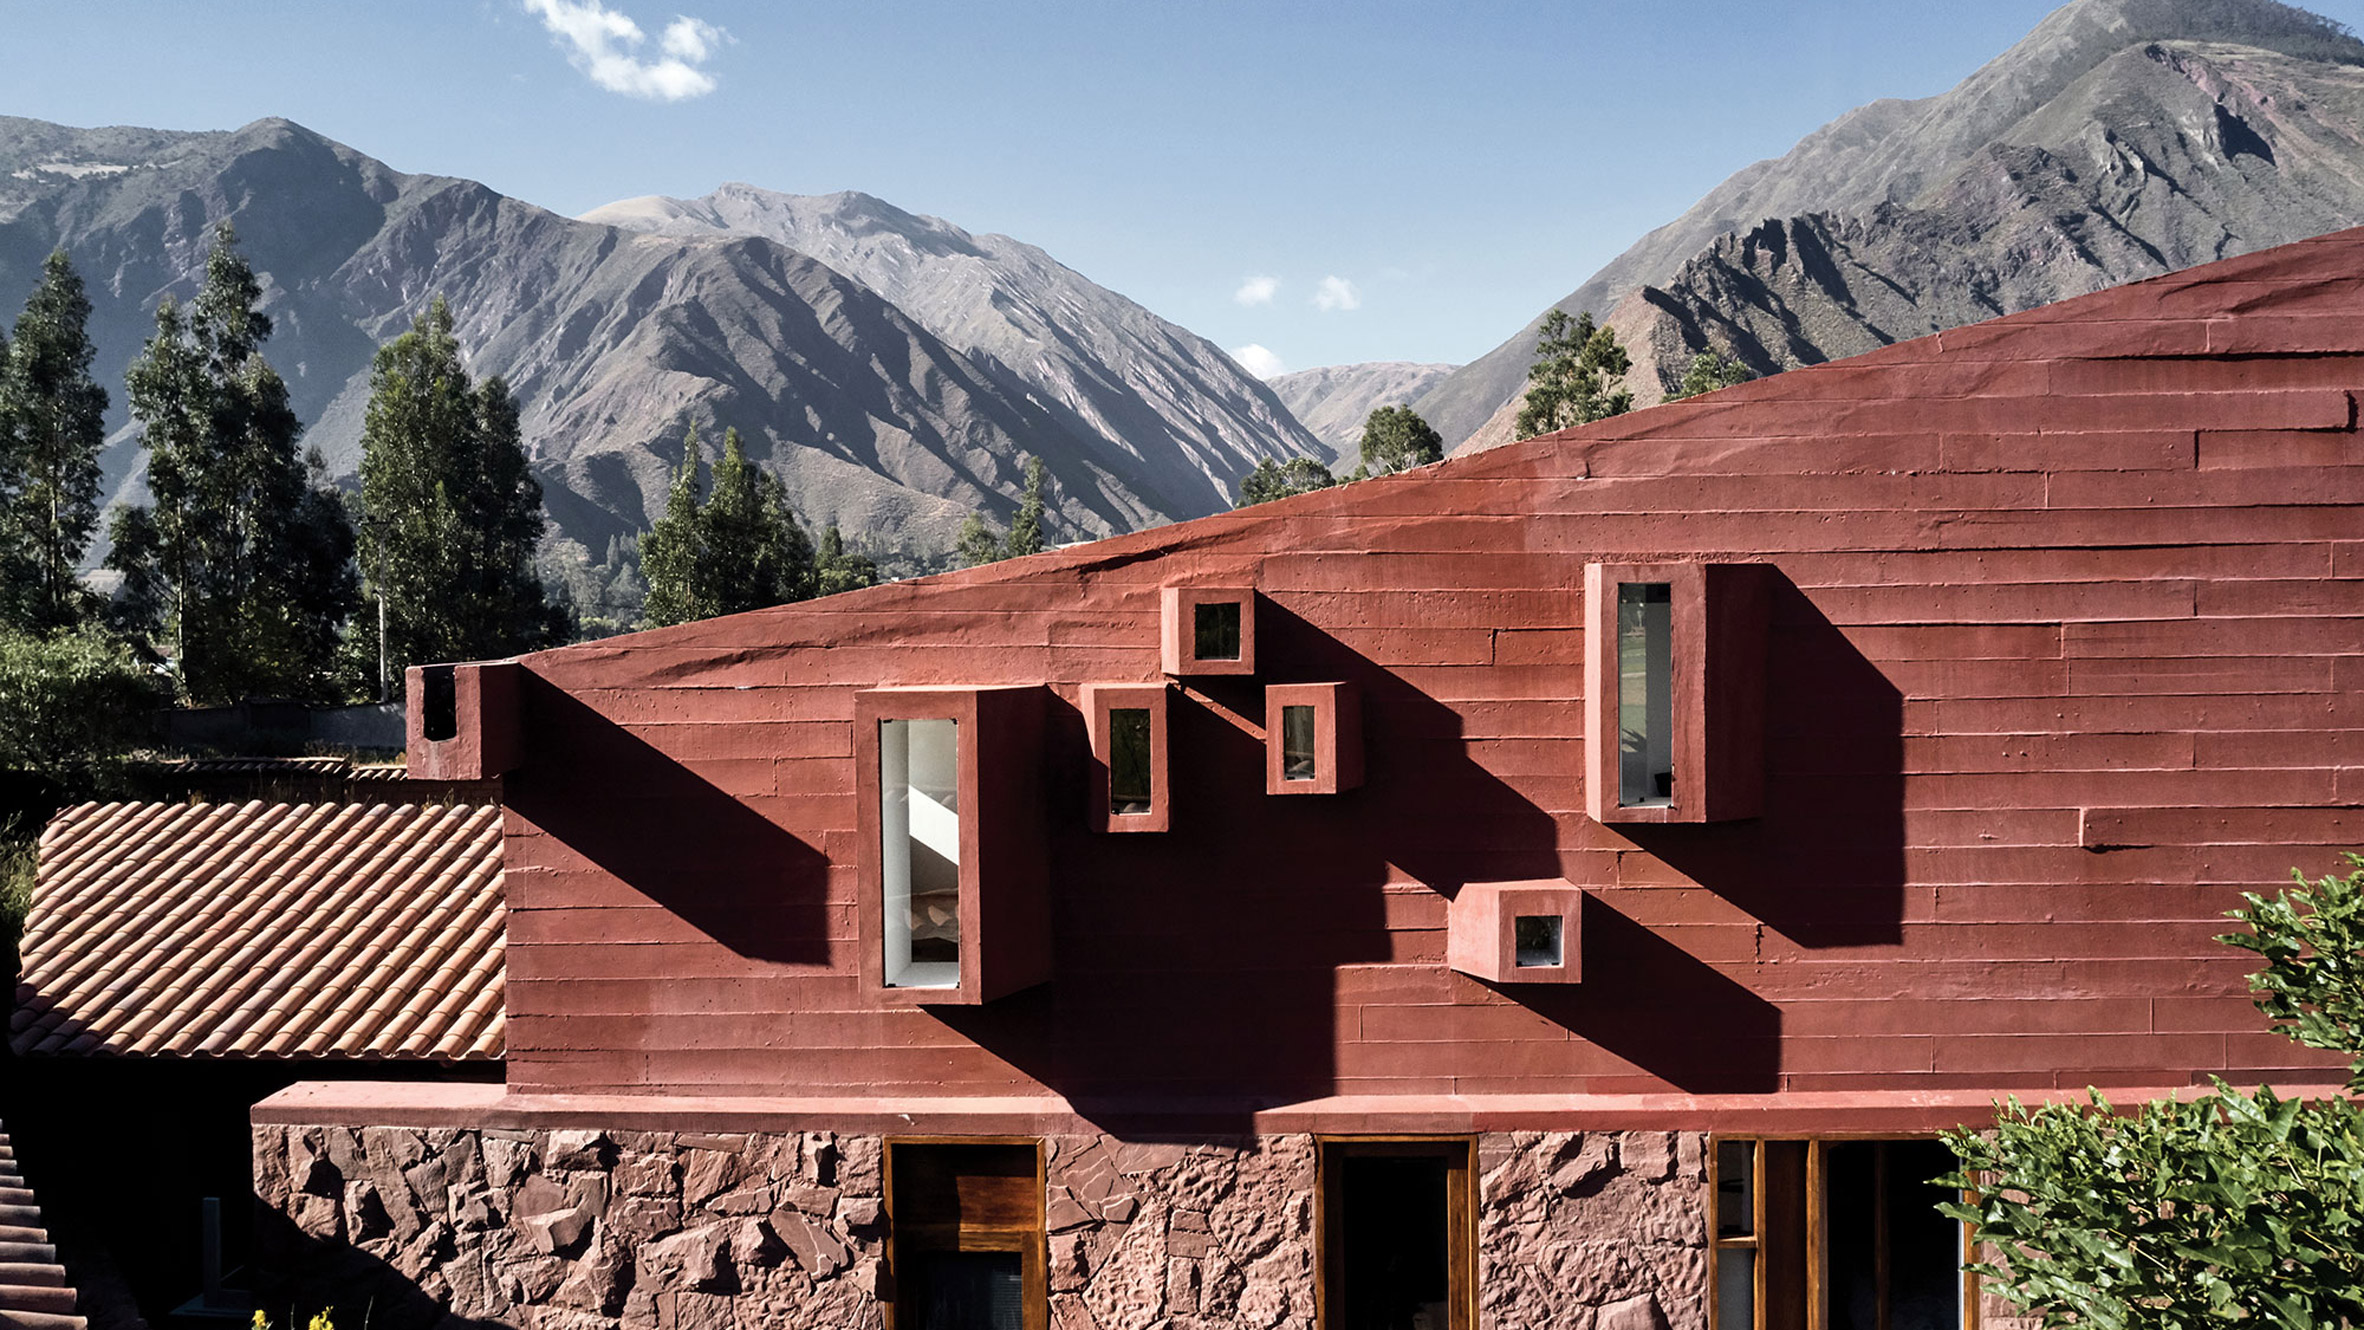 Peruvian mountains surround geometric and red Casa Huayoccari by Barclay & Crousse